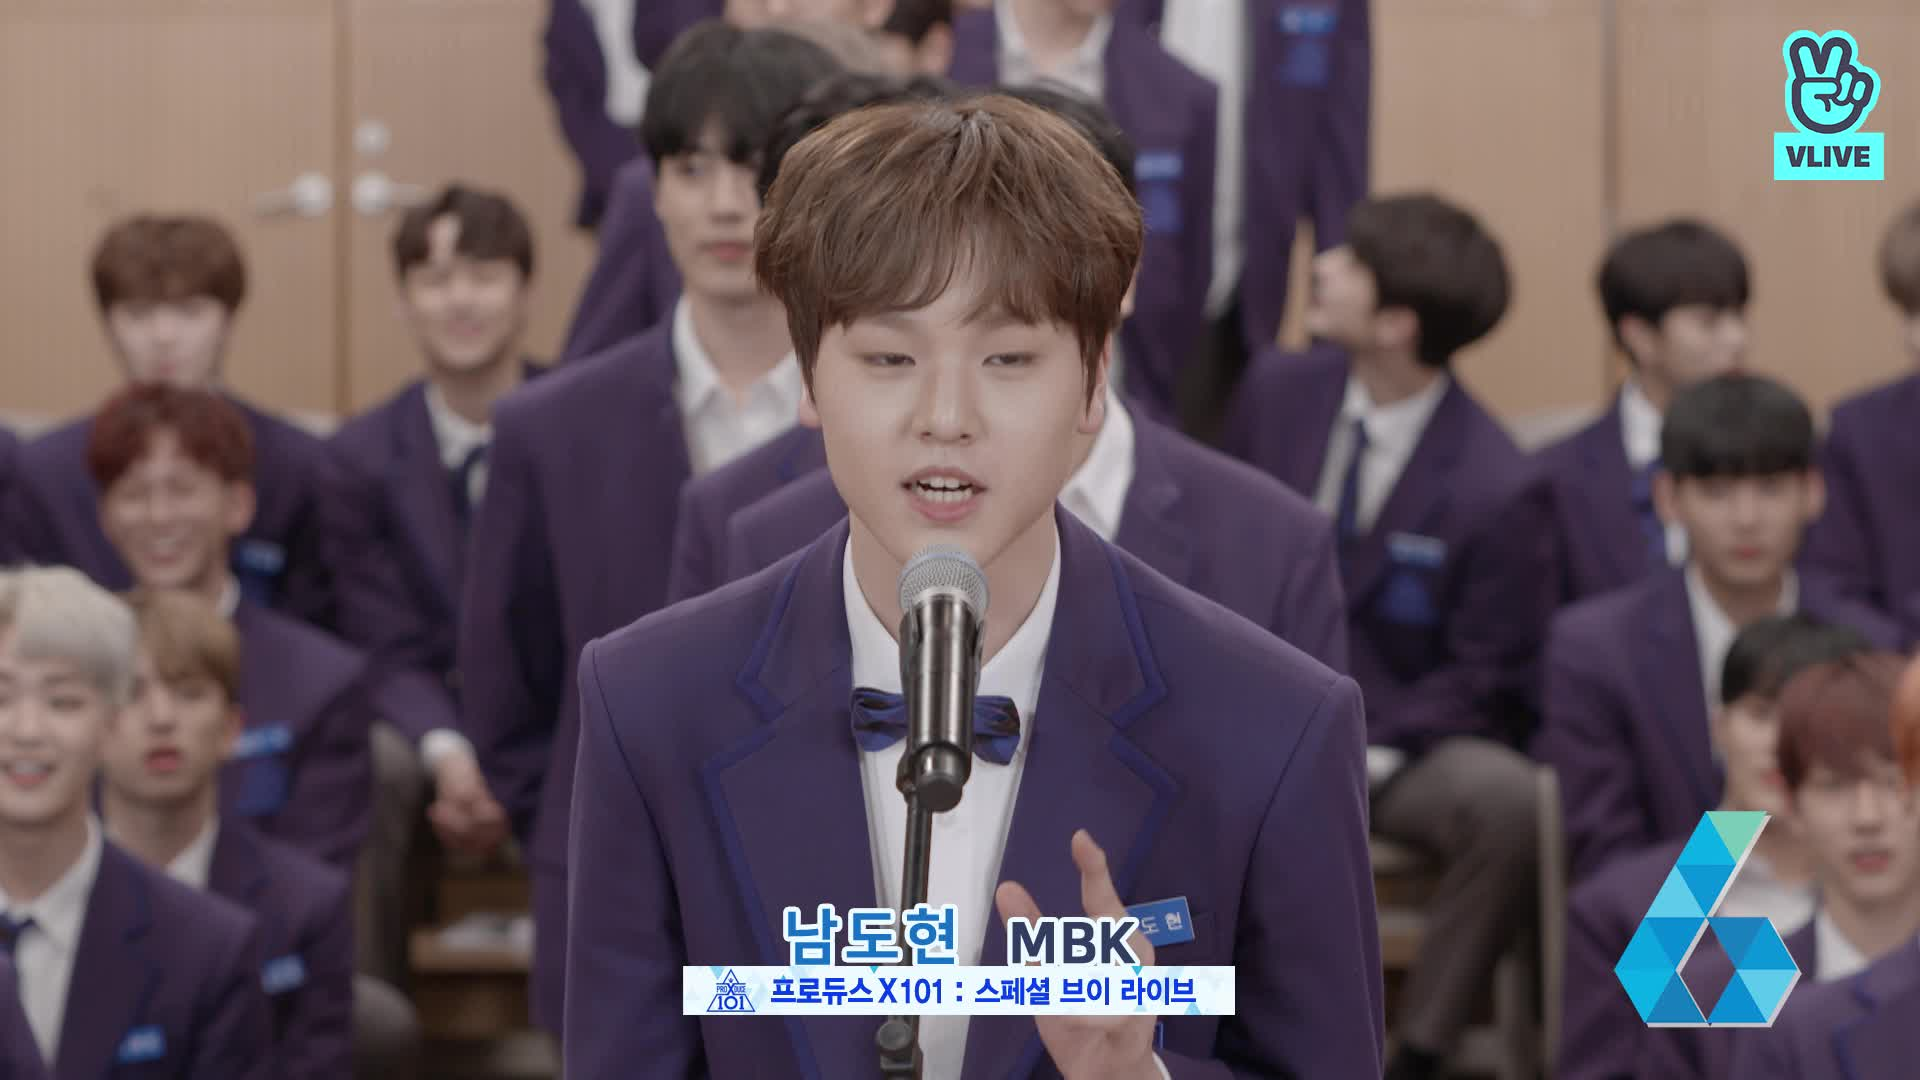 [PRODUCE X 101] 10sec. PR / NAM DO HYON